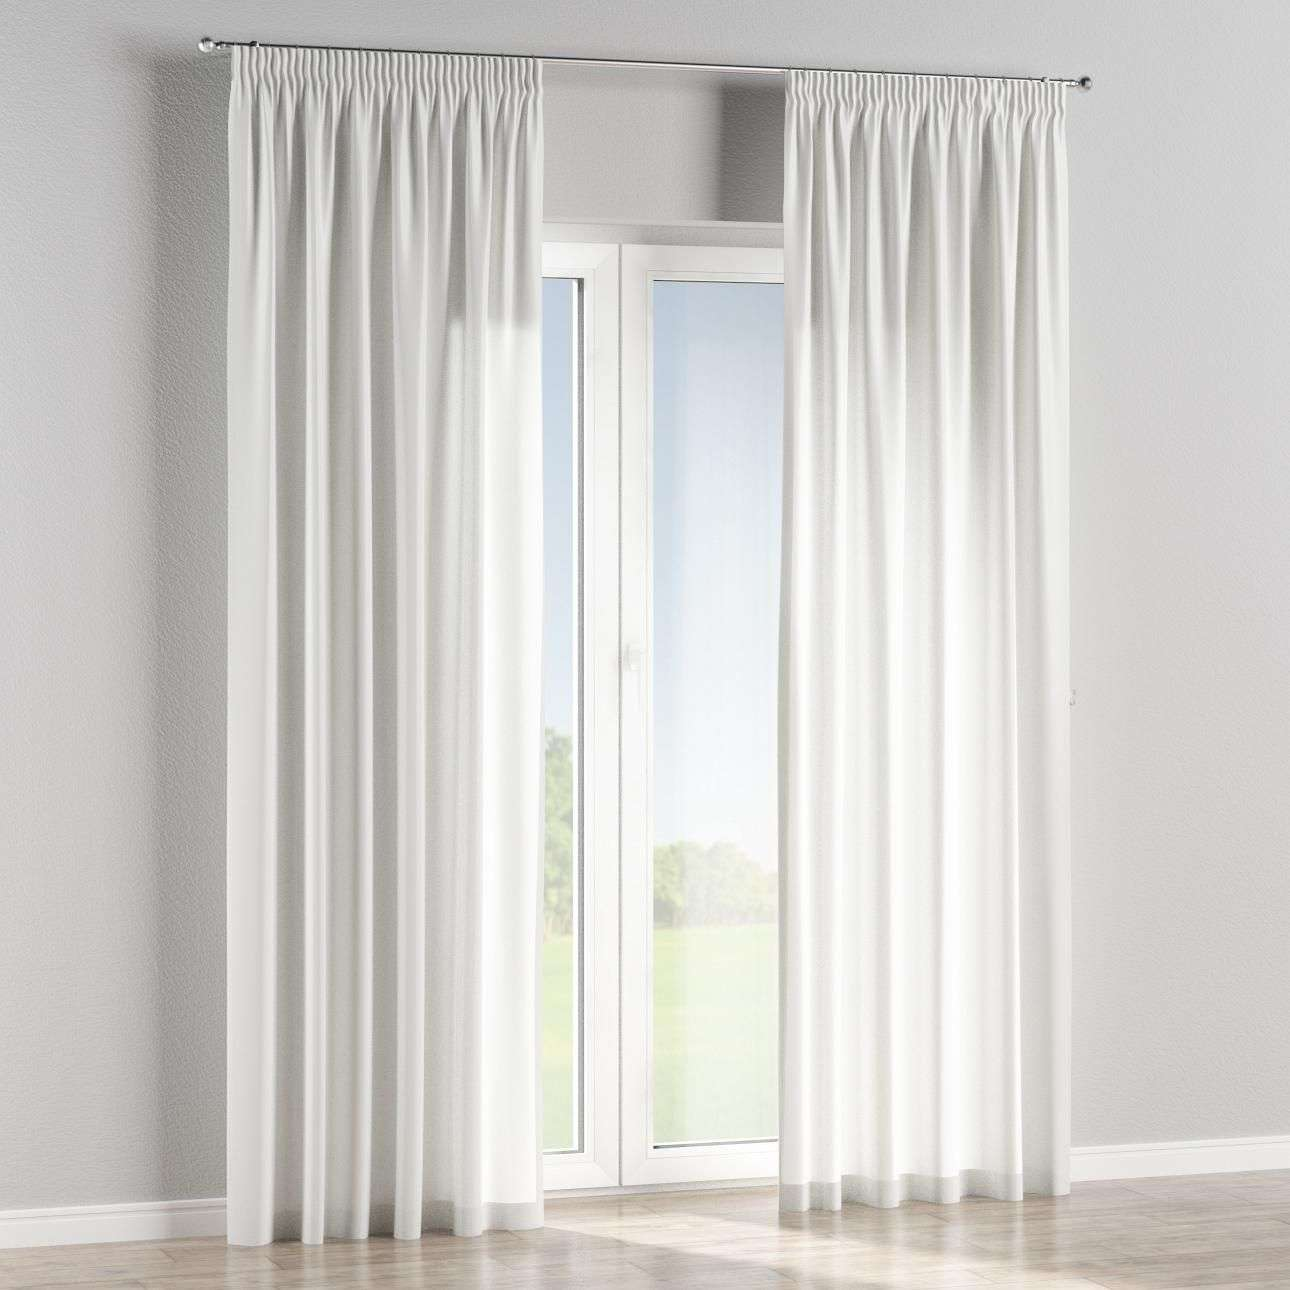 Pencil pleat curtains in collection Milano, fabric: 150-28